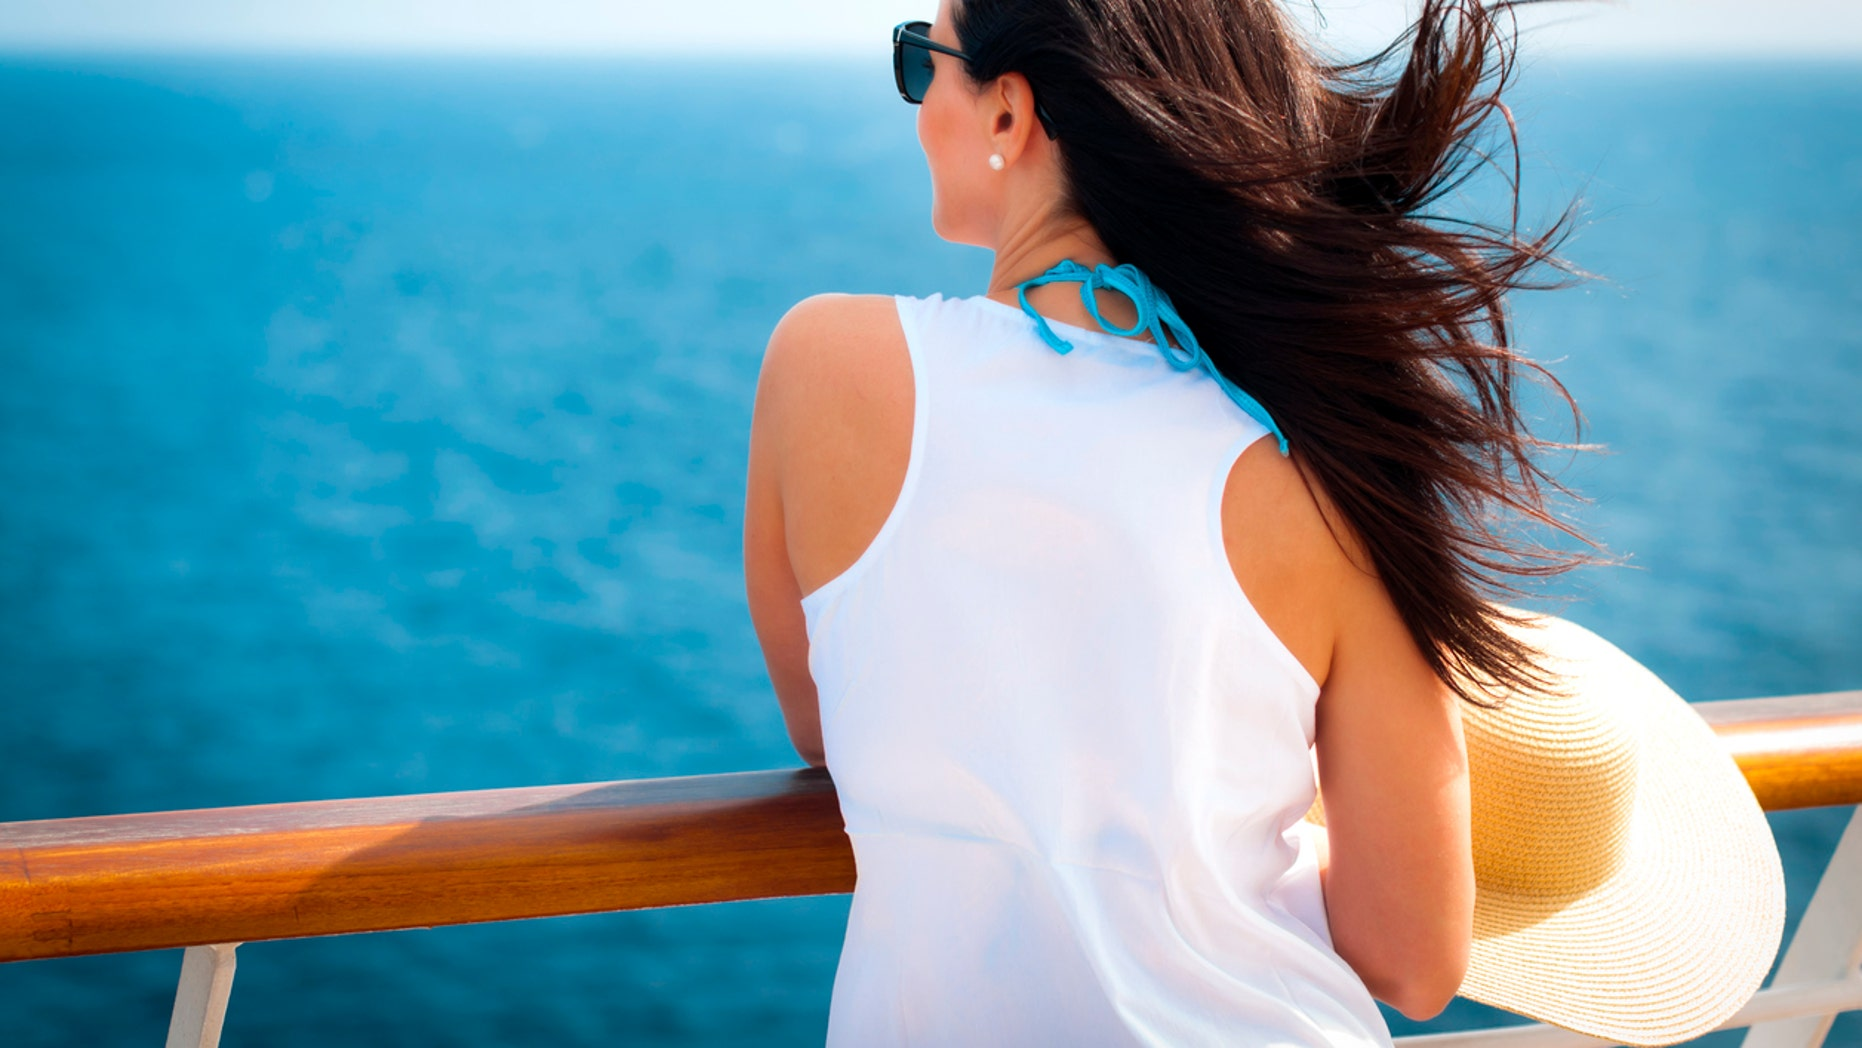 Woman wearing a floppy straw hat and a white dress standing next to the railing on a cruise ship